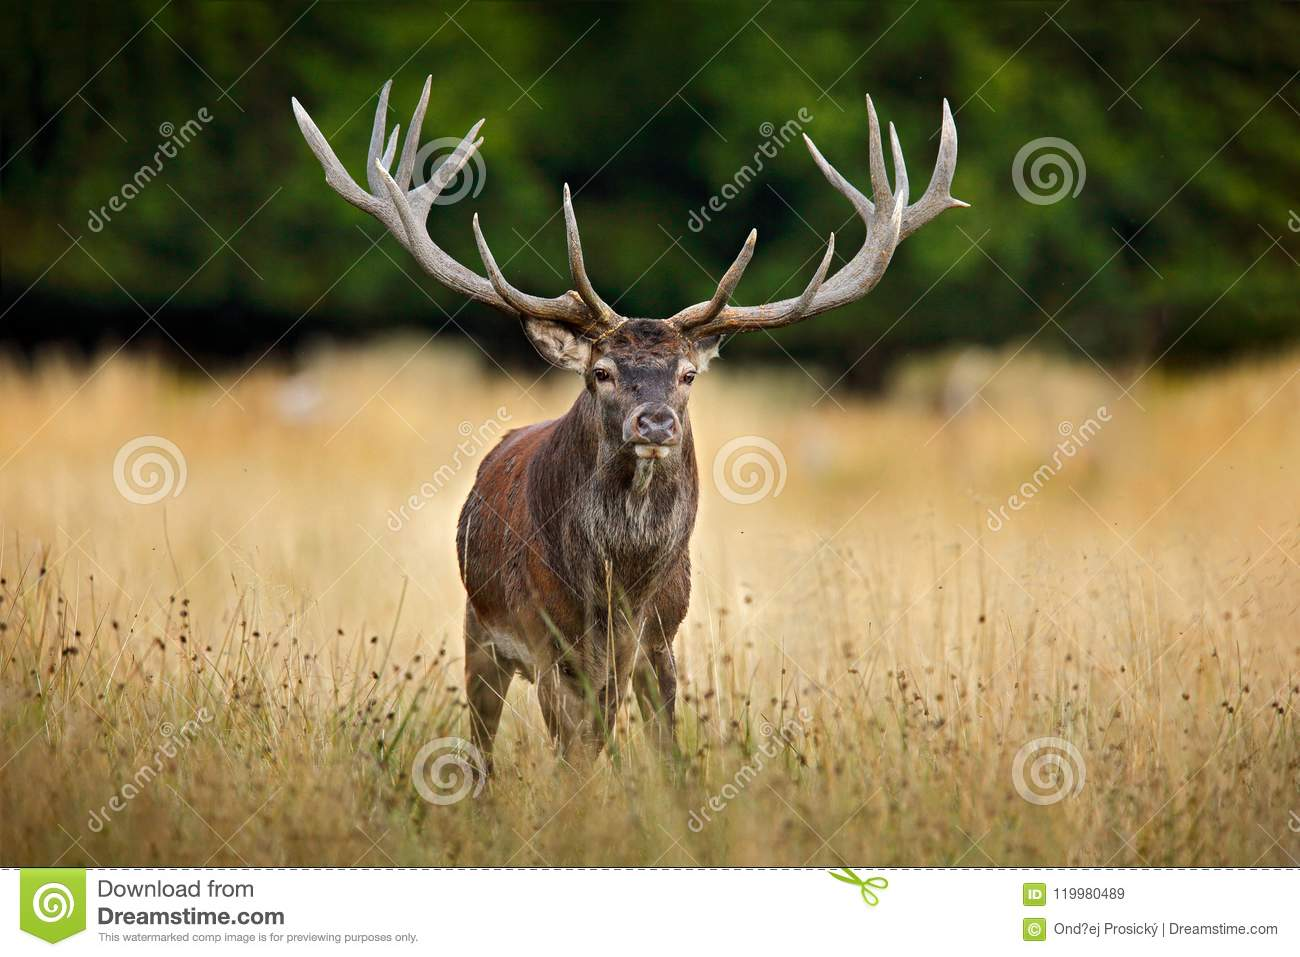 Red deer stag, majestic powerful adult animal outside autumn forest. Big animal in the nature forest habitat, Denmark. Wildlife sc